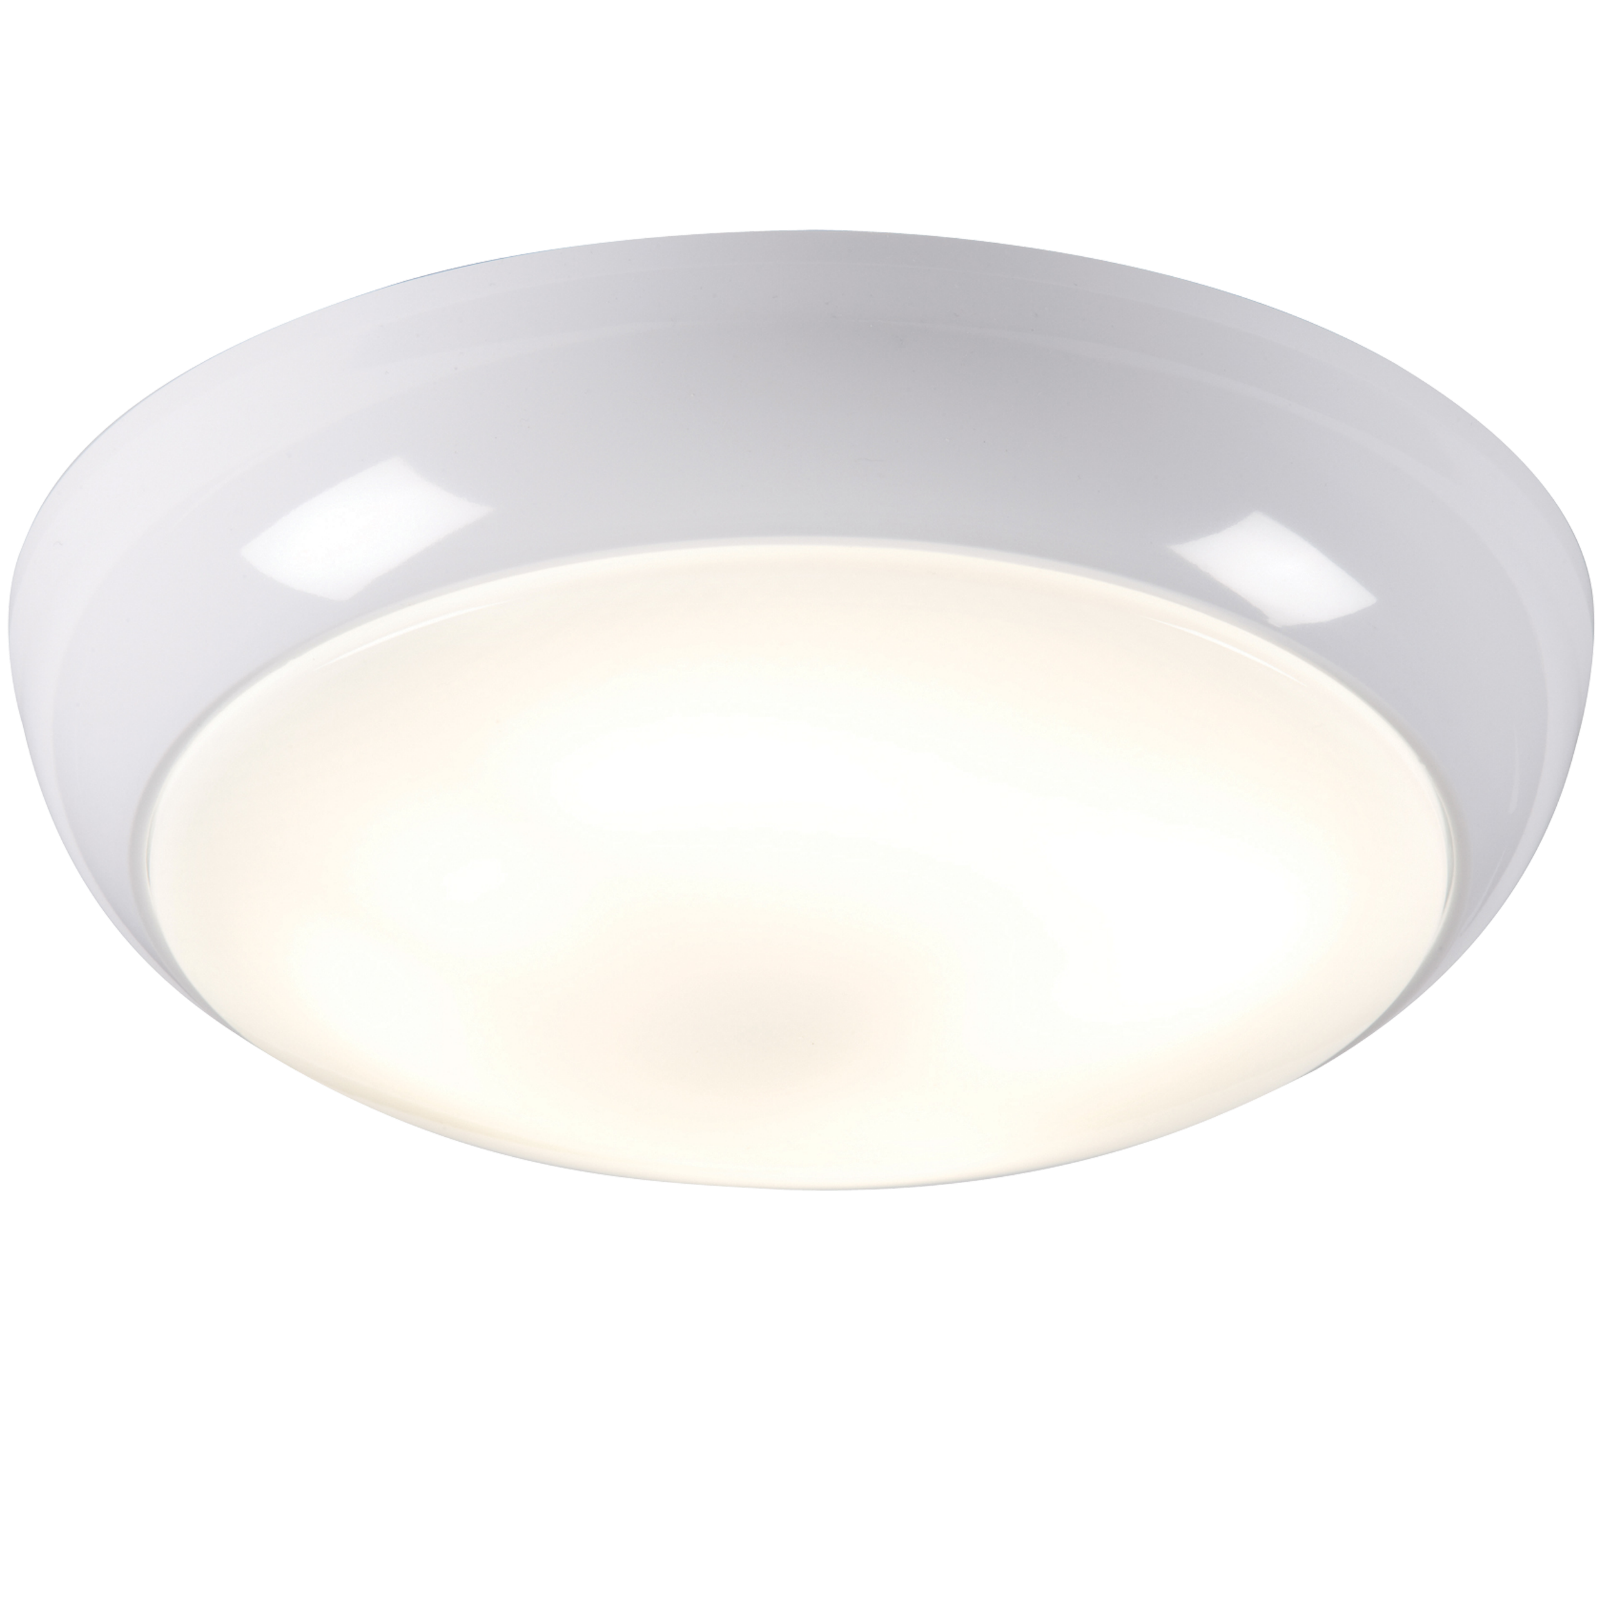 IP44 28W HF Polo bulkhead with Opal Diffuser, White Base and Microwave Sensor